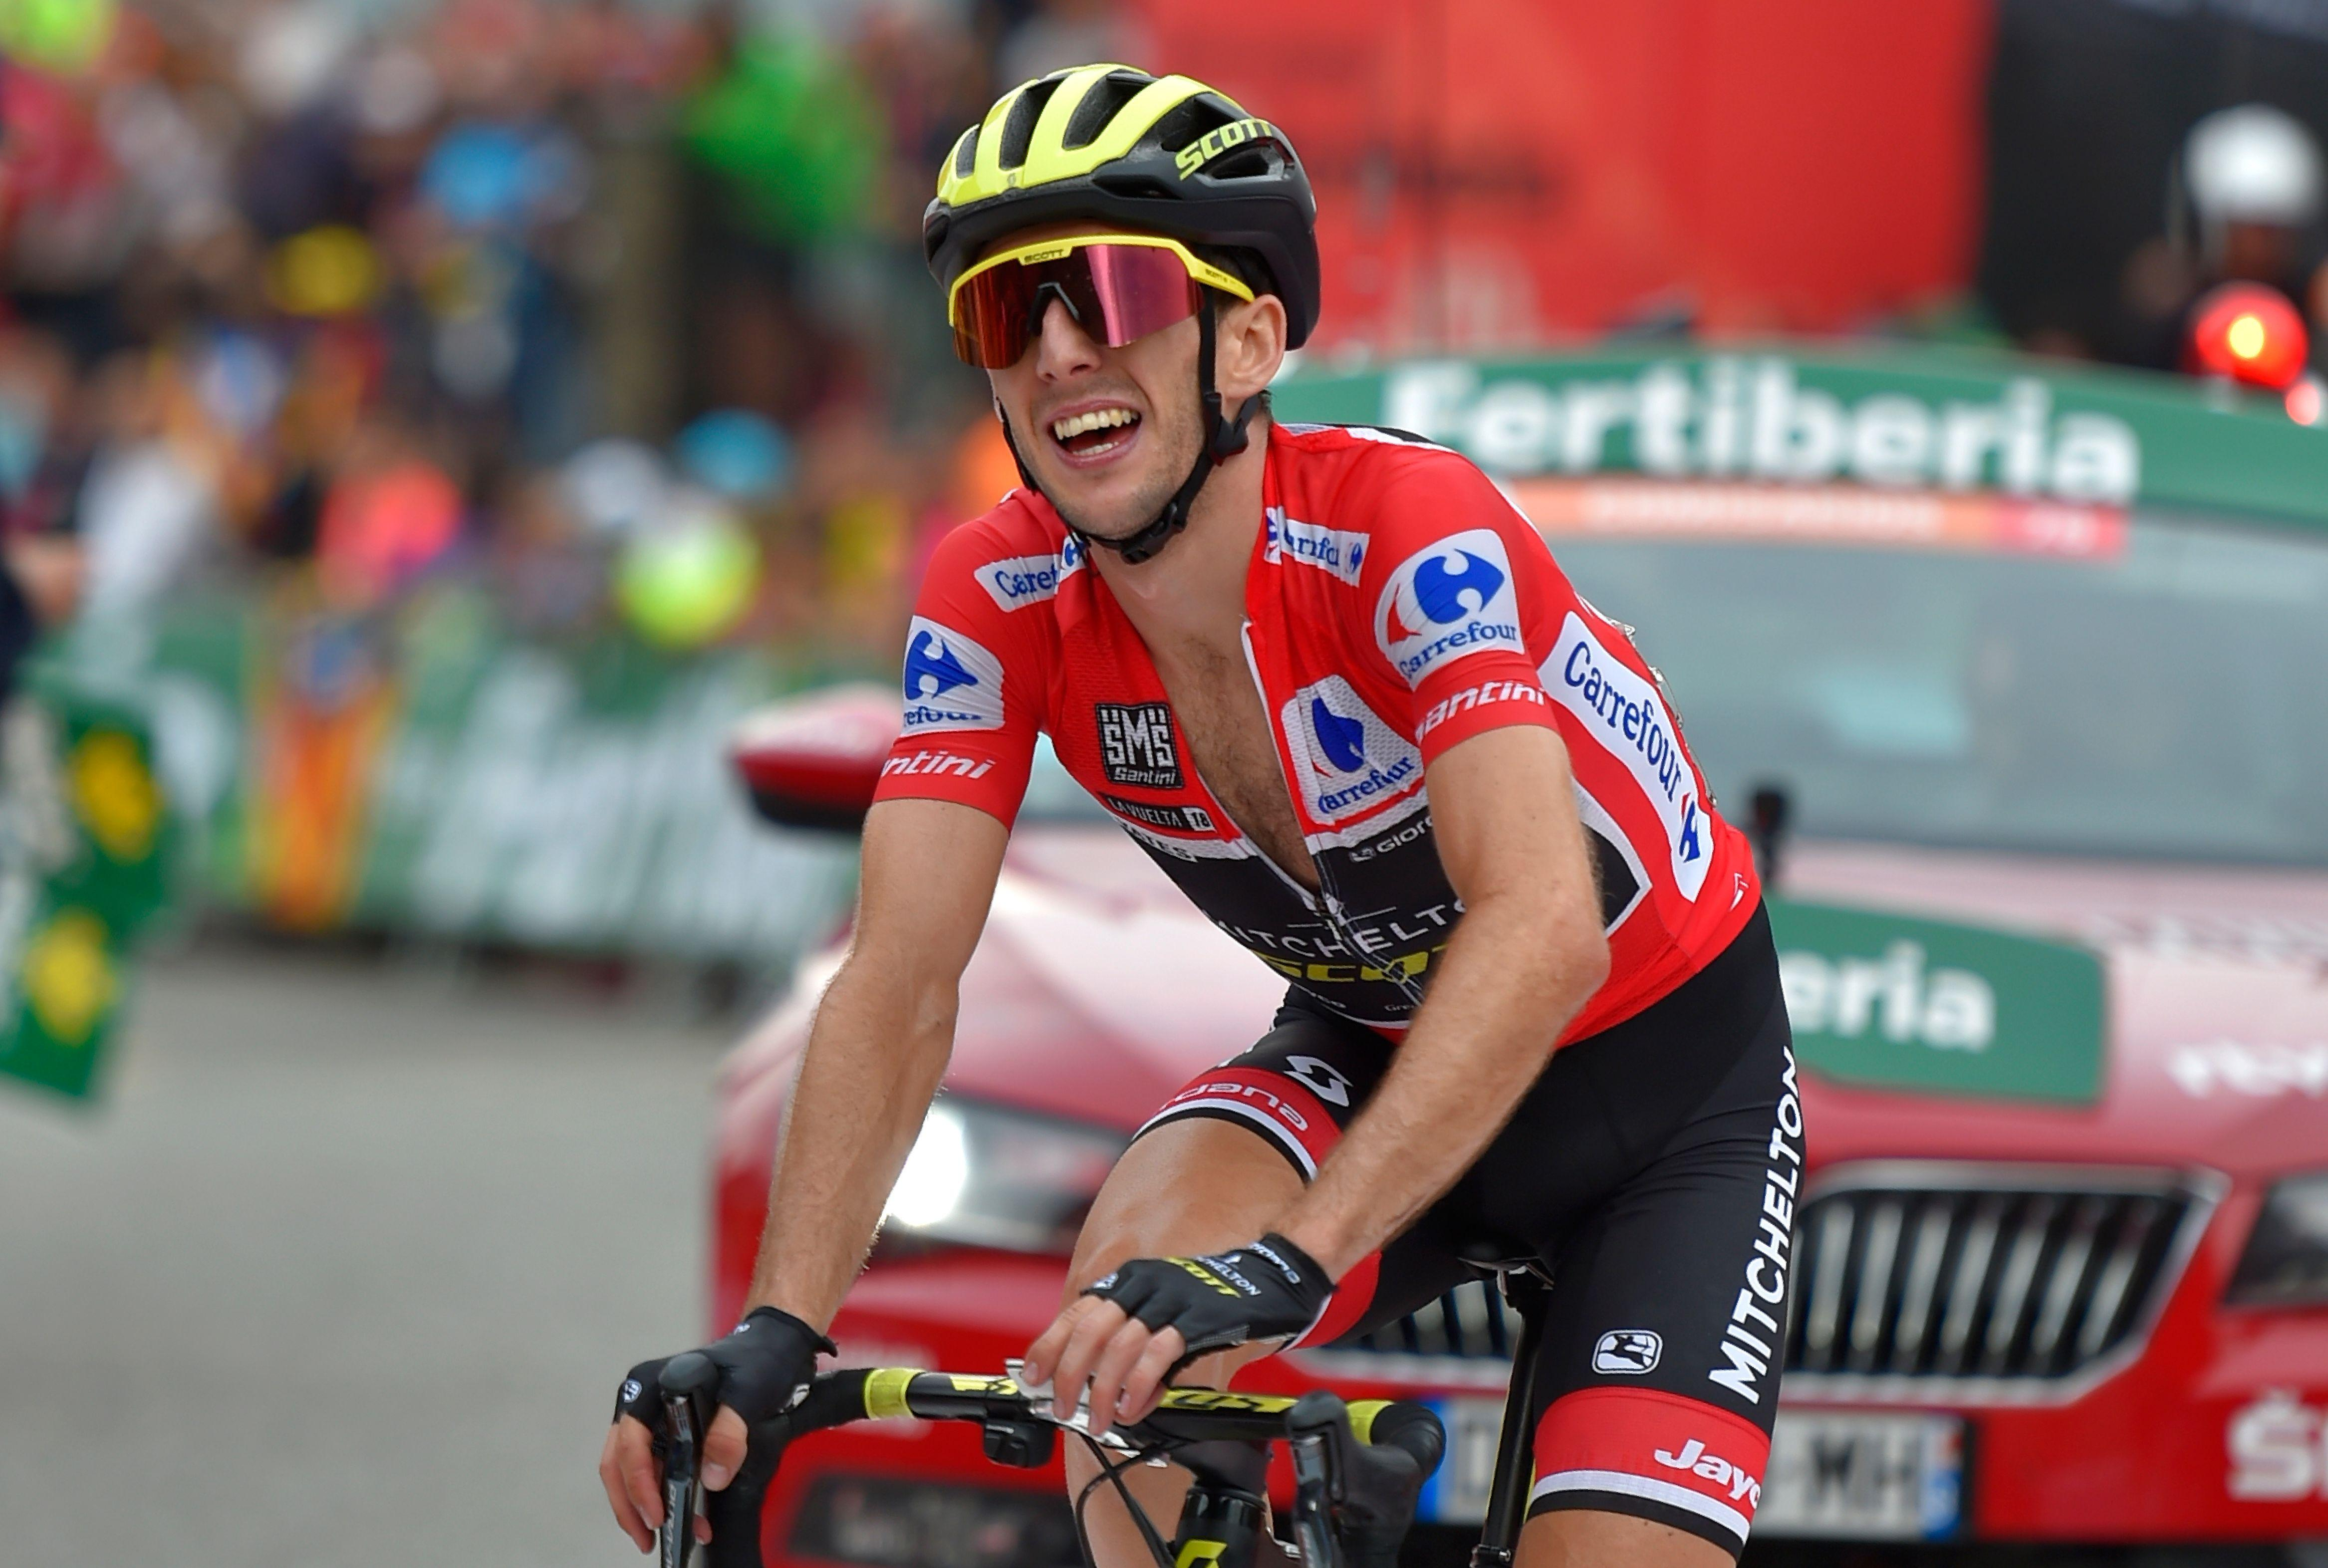 Simon Yates celebrates after crossing the line on stage 20 of La Vuelta to all-but clinch the title